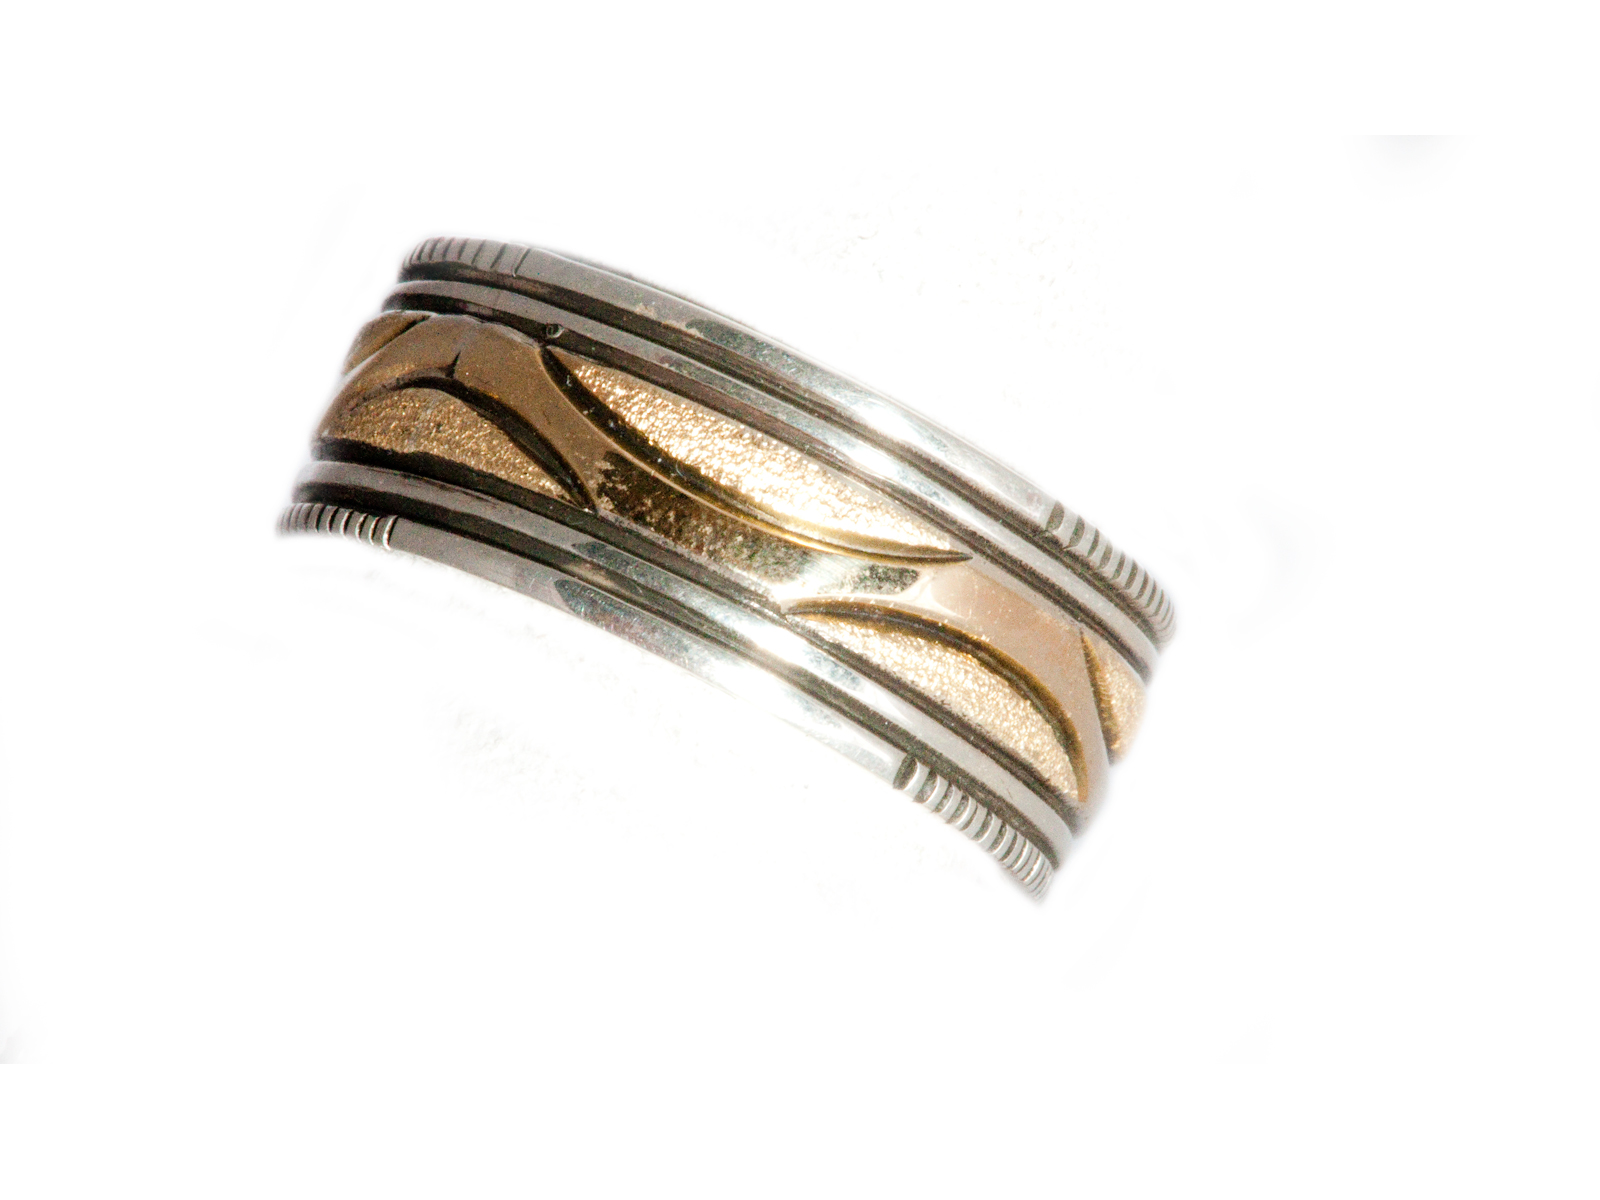 native indian open rings vintage ring pawn signed x band navajo couple jewelry item feather wedding